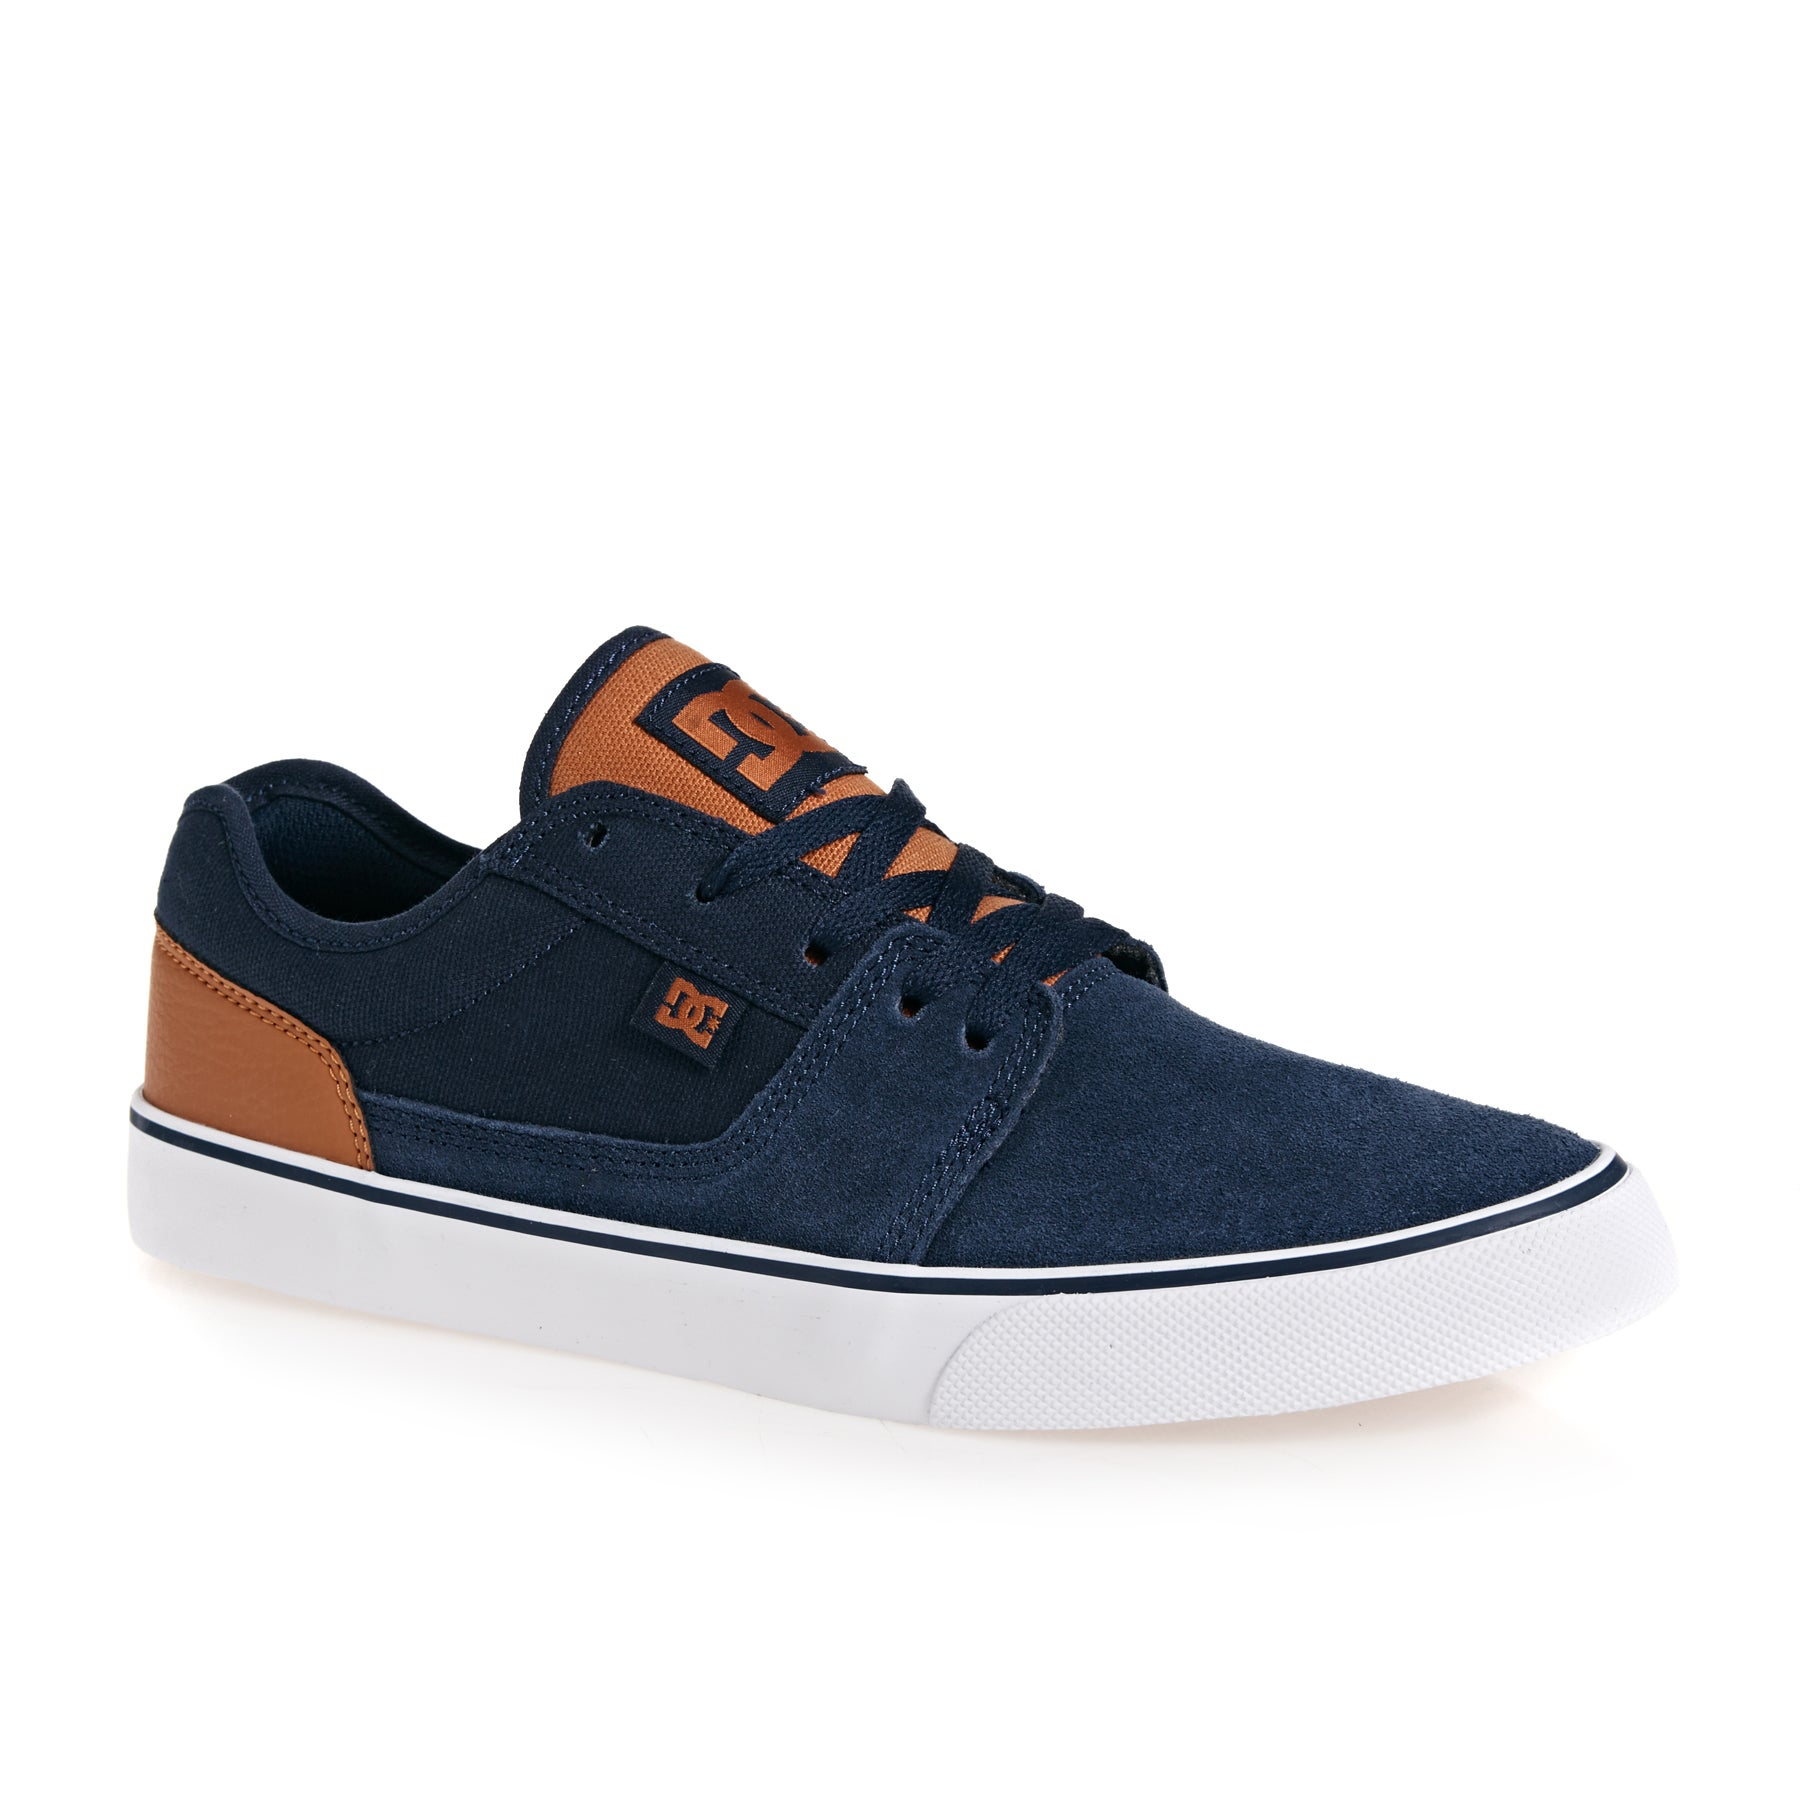 DC Tonik Shoes available from Surfdome